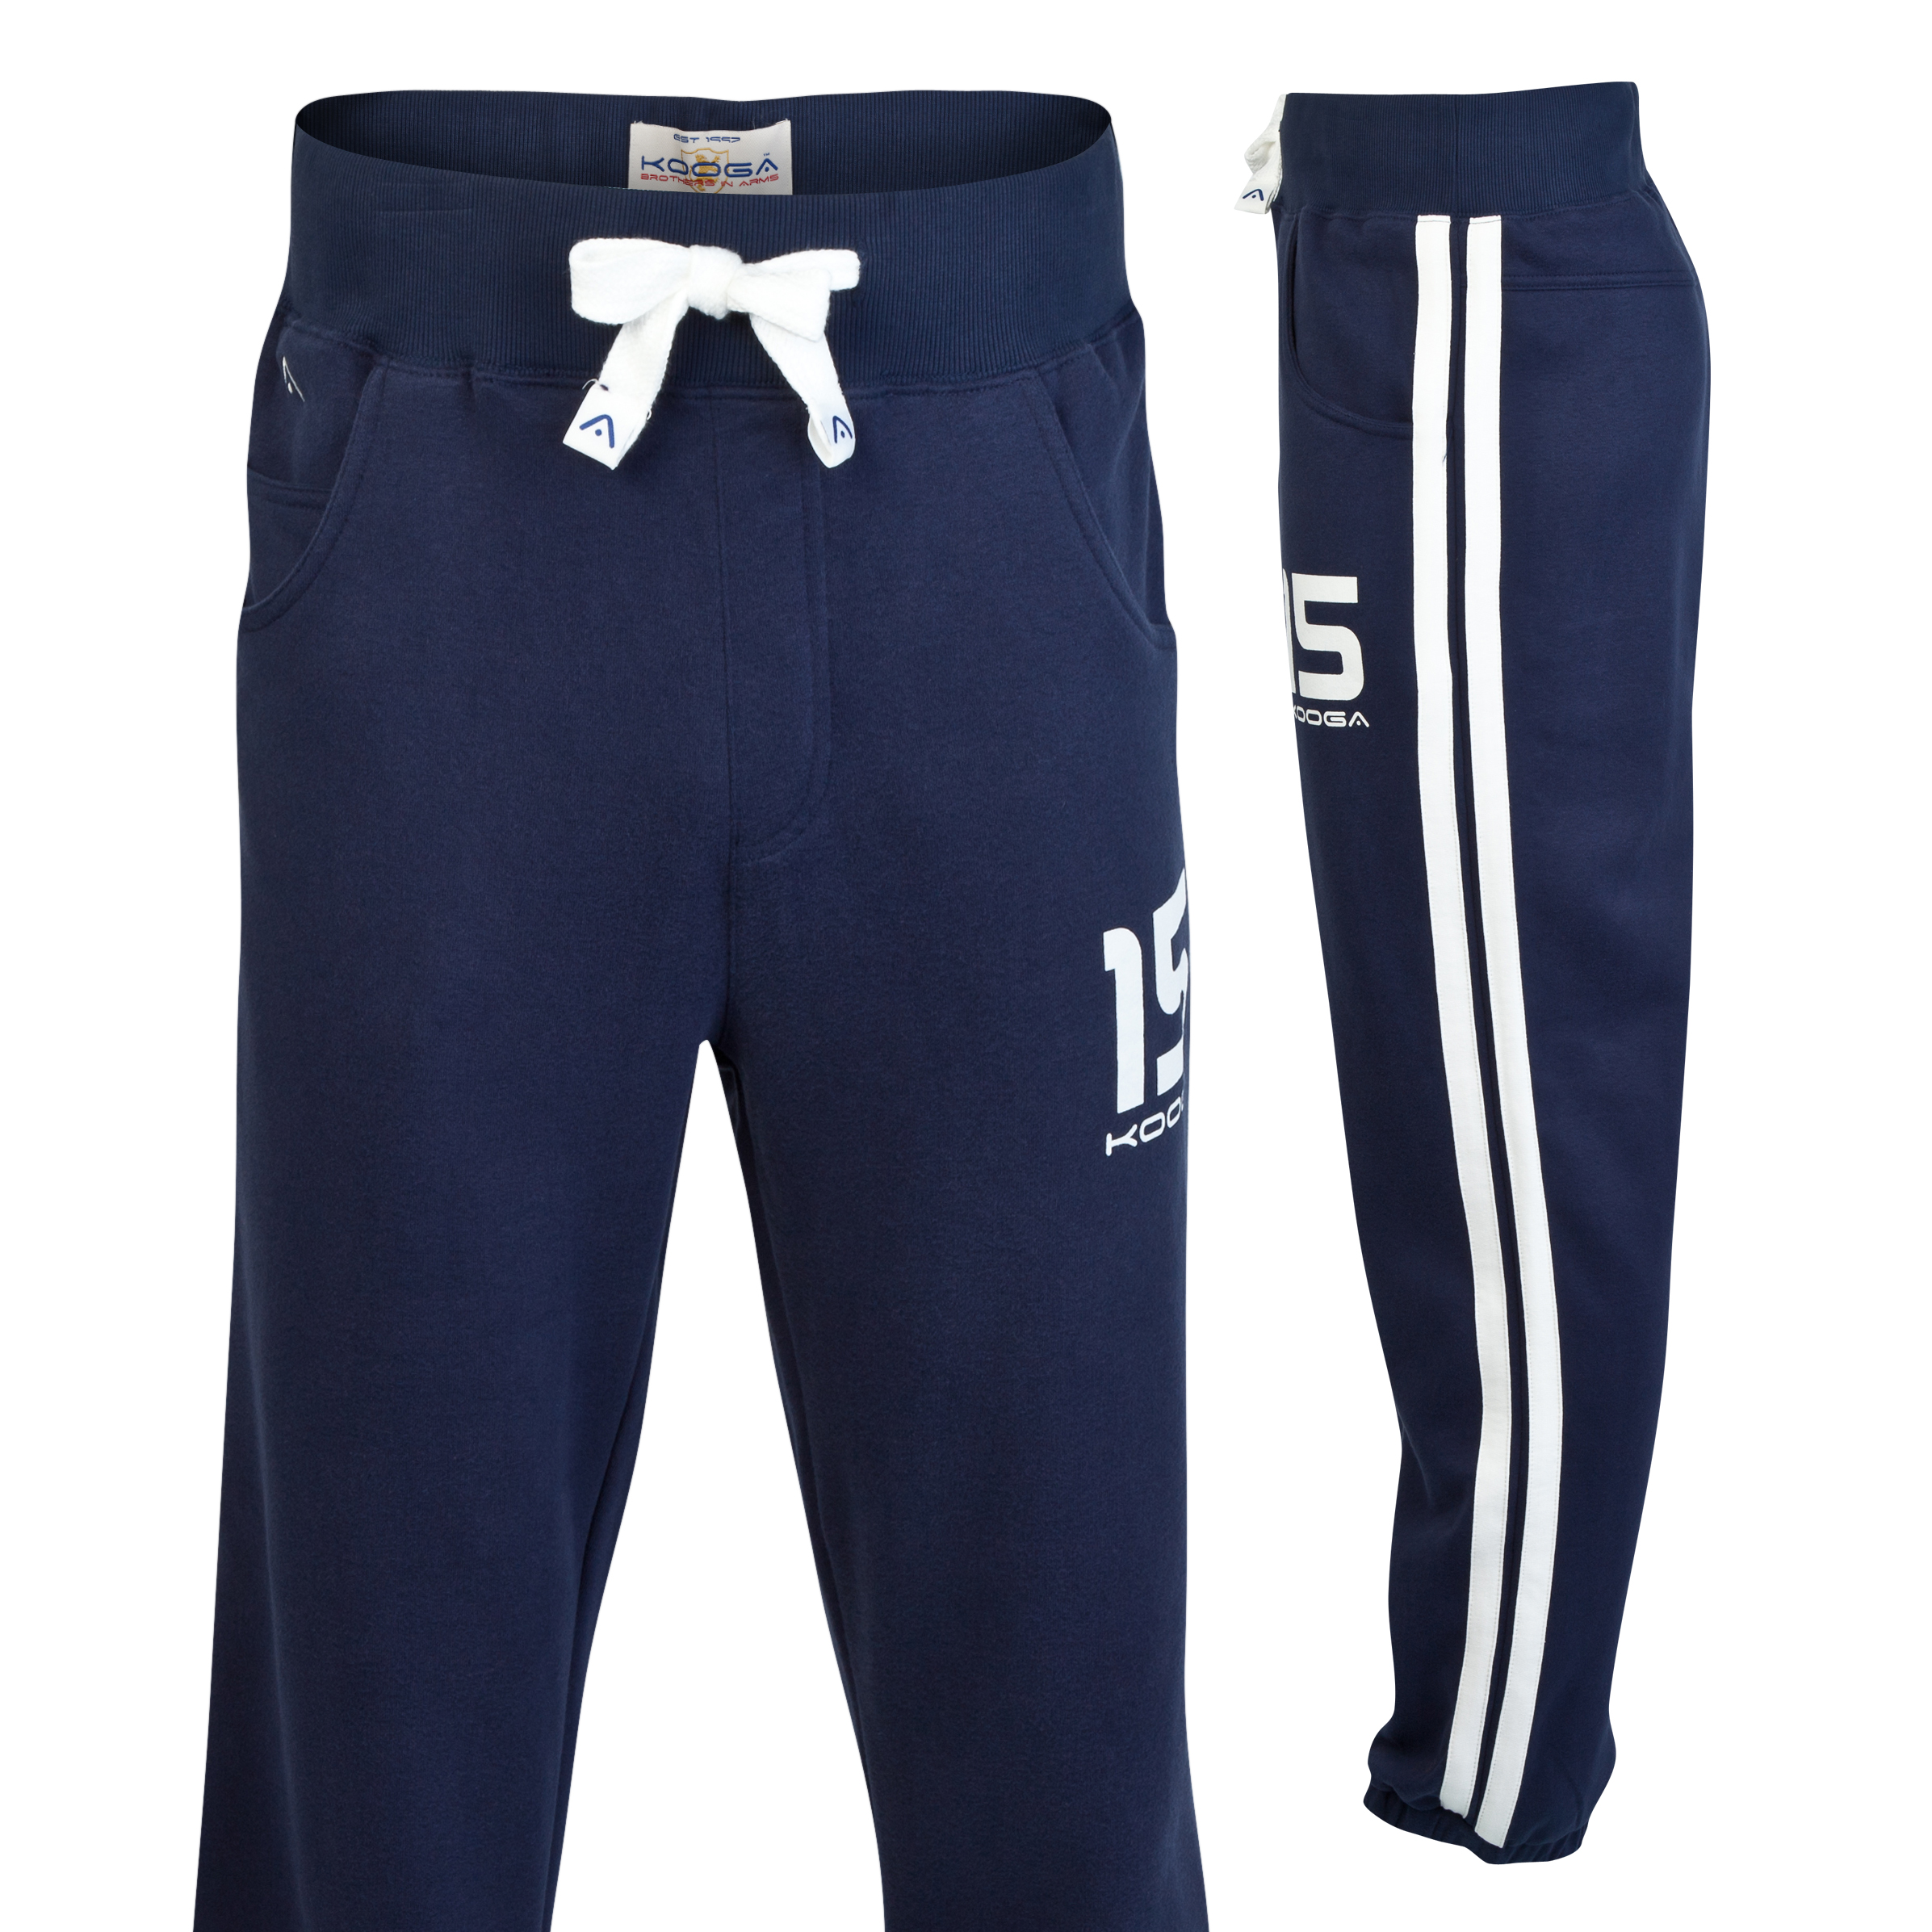 Kooga Fleece Pant - Navy